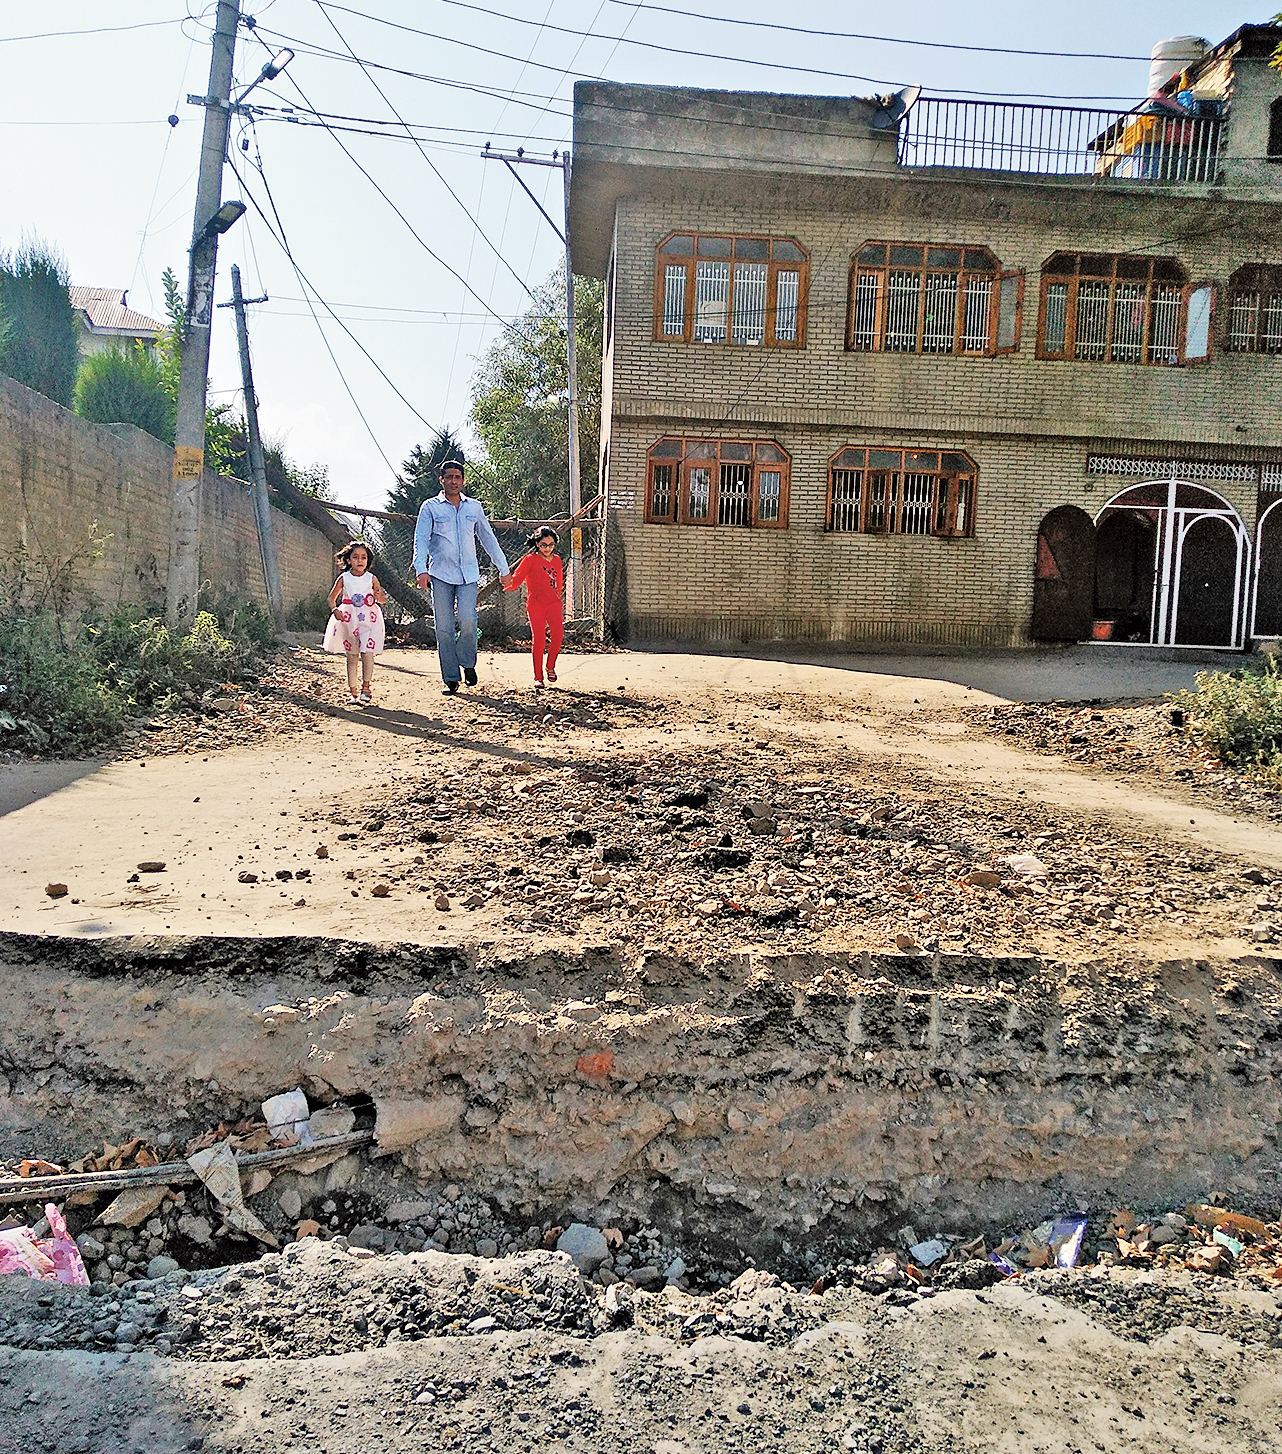 One of the roads leading to Anchar in Srinagar. The road has been dug up to prevent security forces from entering the area.